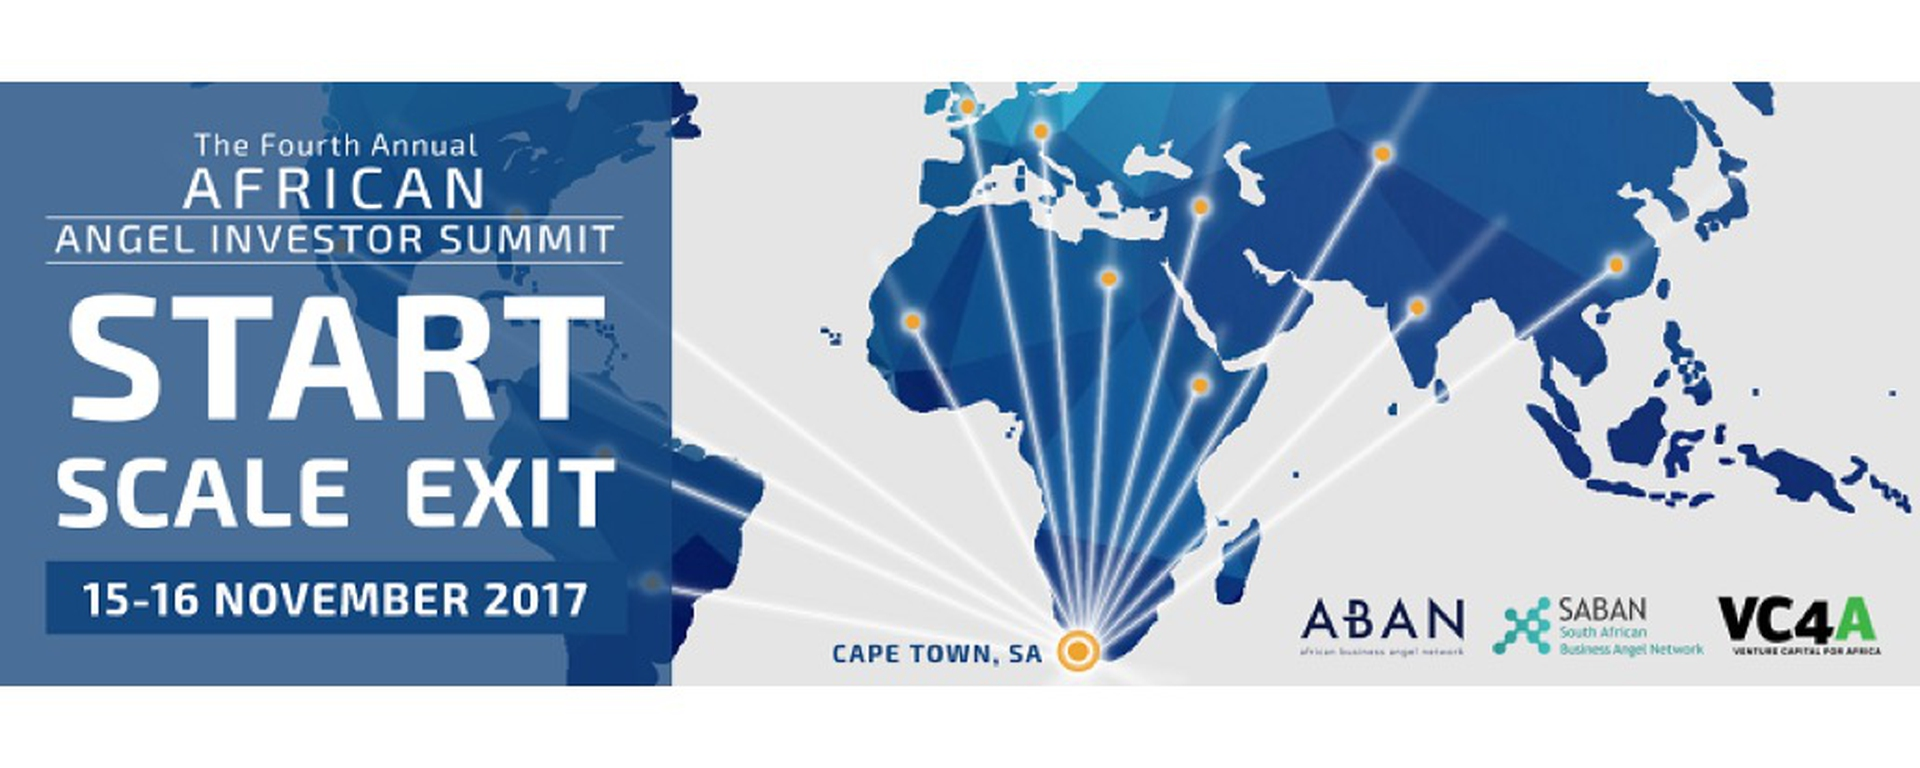 African Business Angel Network - 4th Annual Investor Summit Movemeback African event cover image